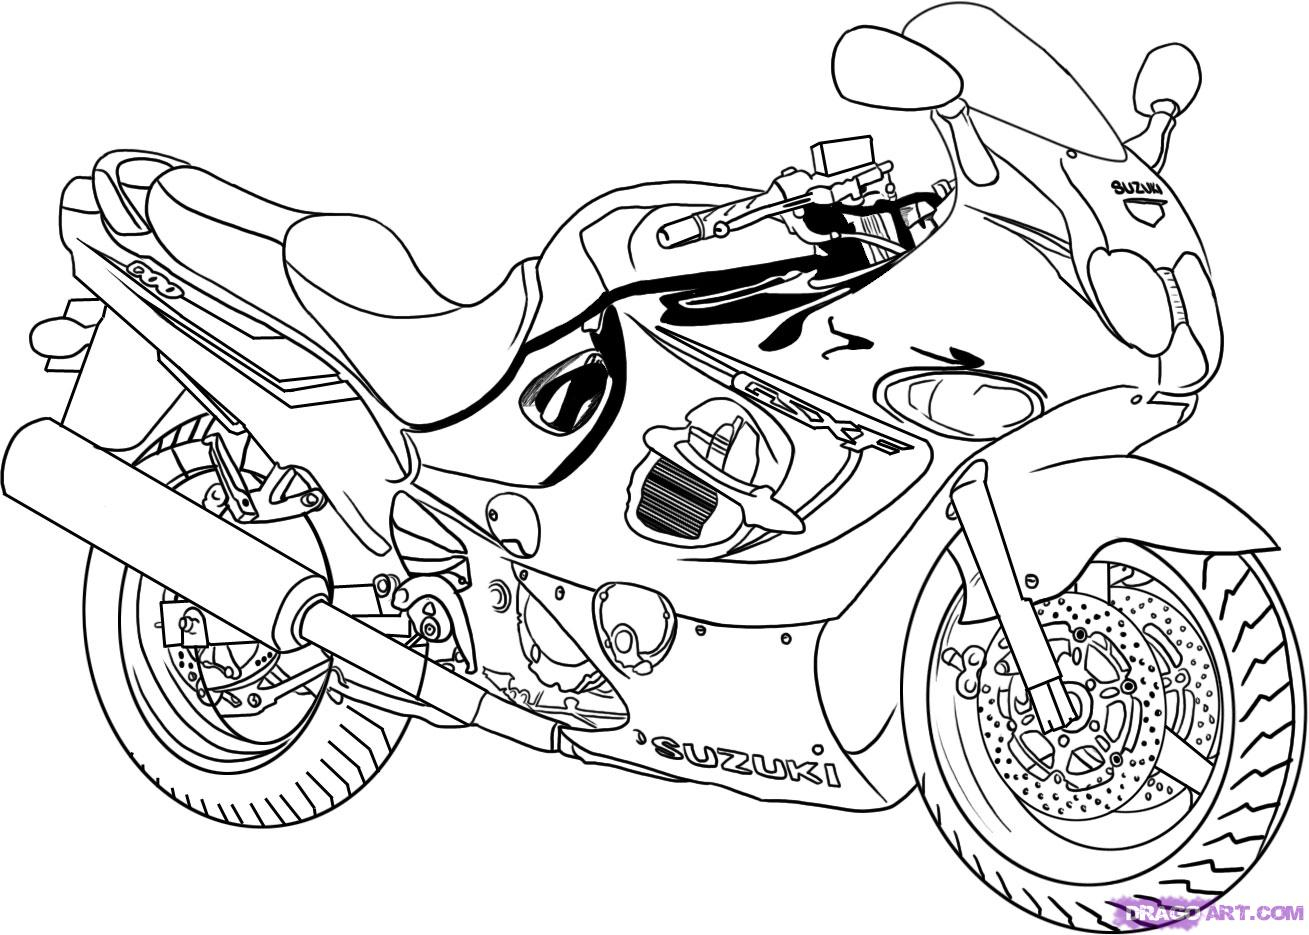 1309x935 Motorcycle Drawing Step By Step How To Draw A Sport Bike, 2006